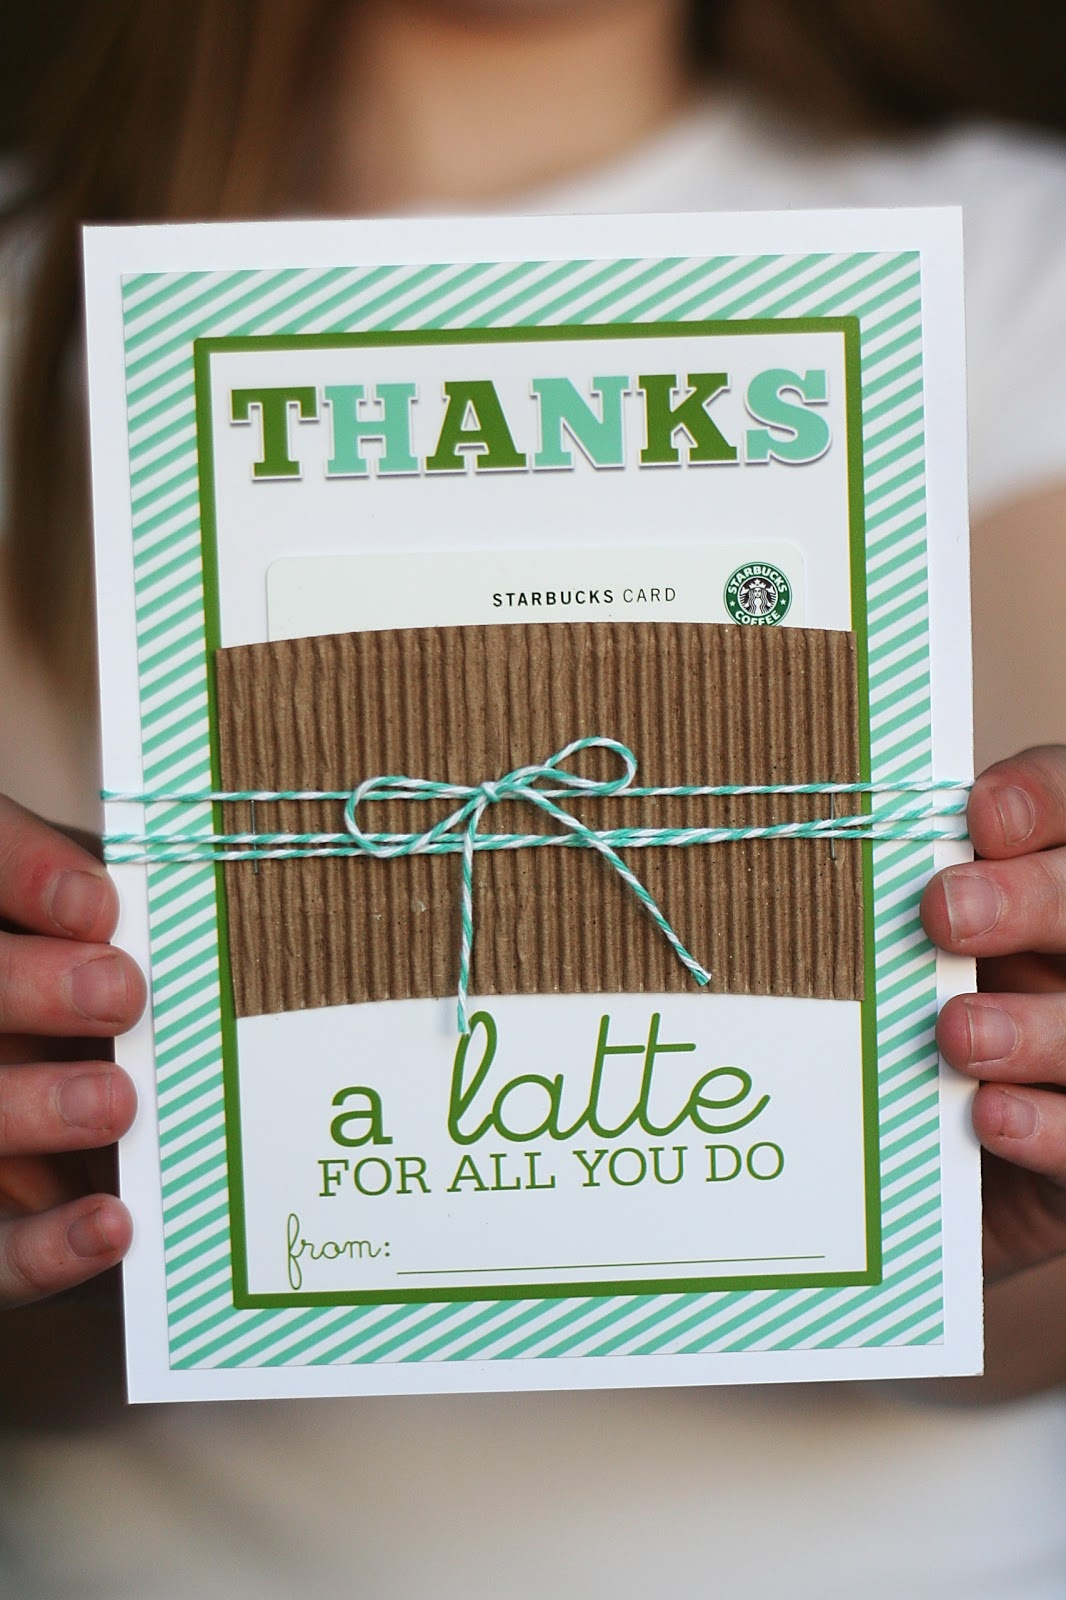 Thanks A Latte Card You Can Print For Free   Eighteen25 - Administrative Professionals Cards Printable Free